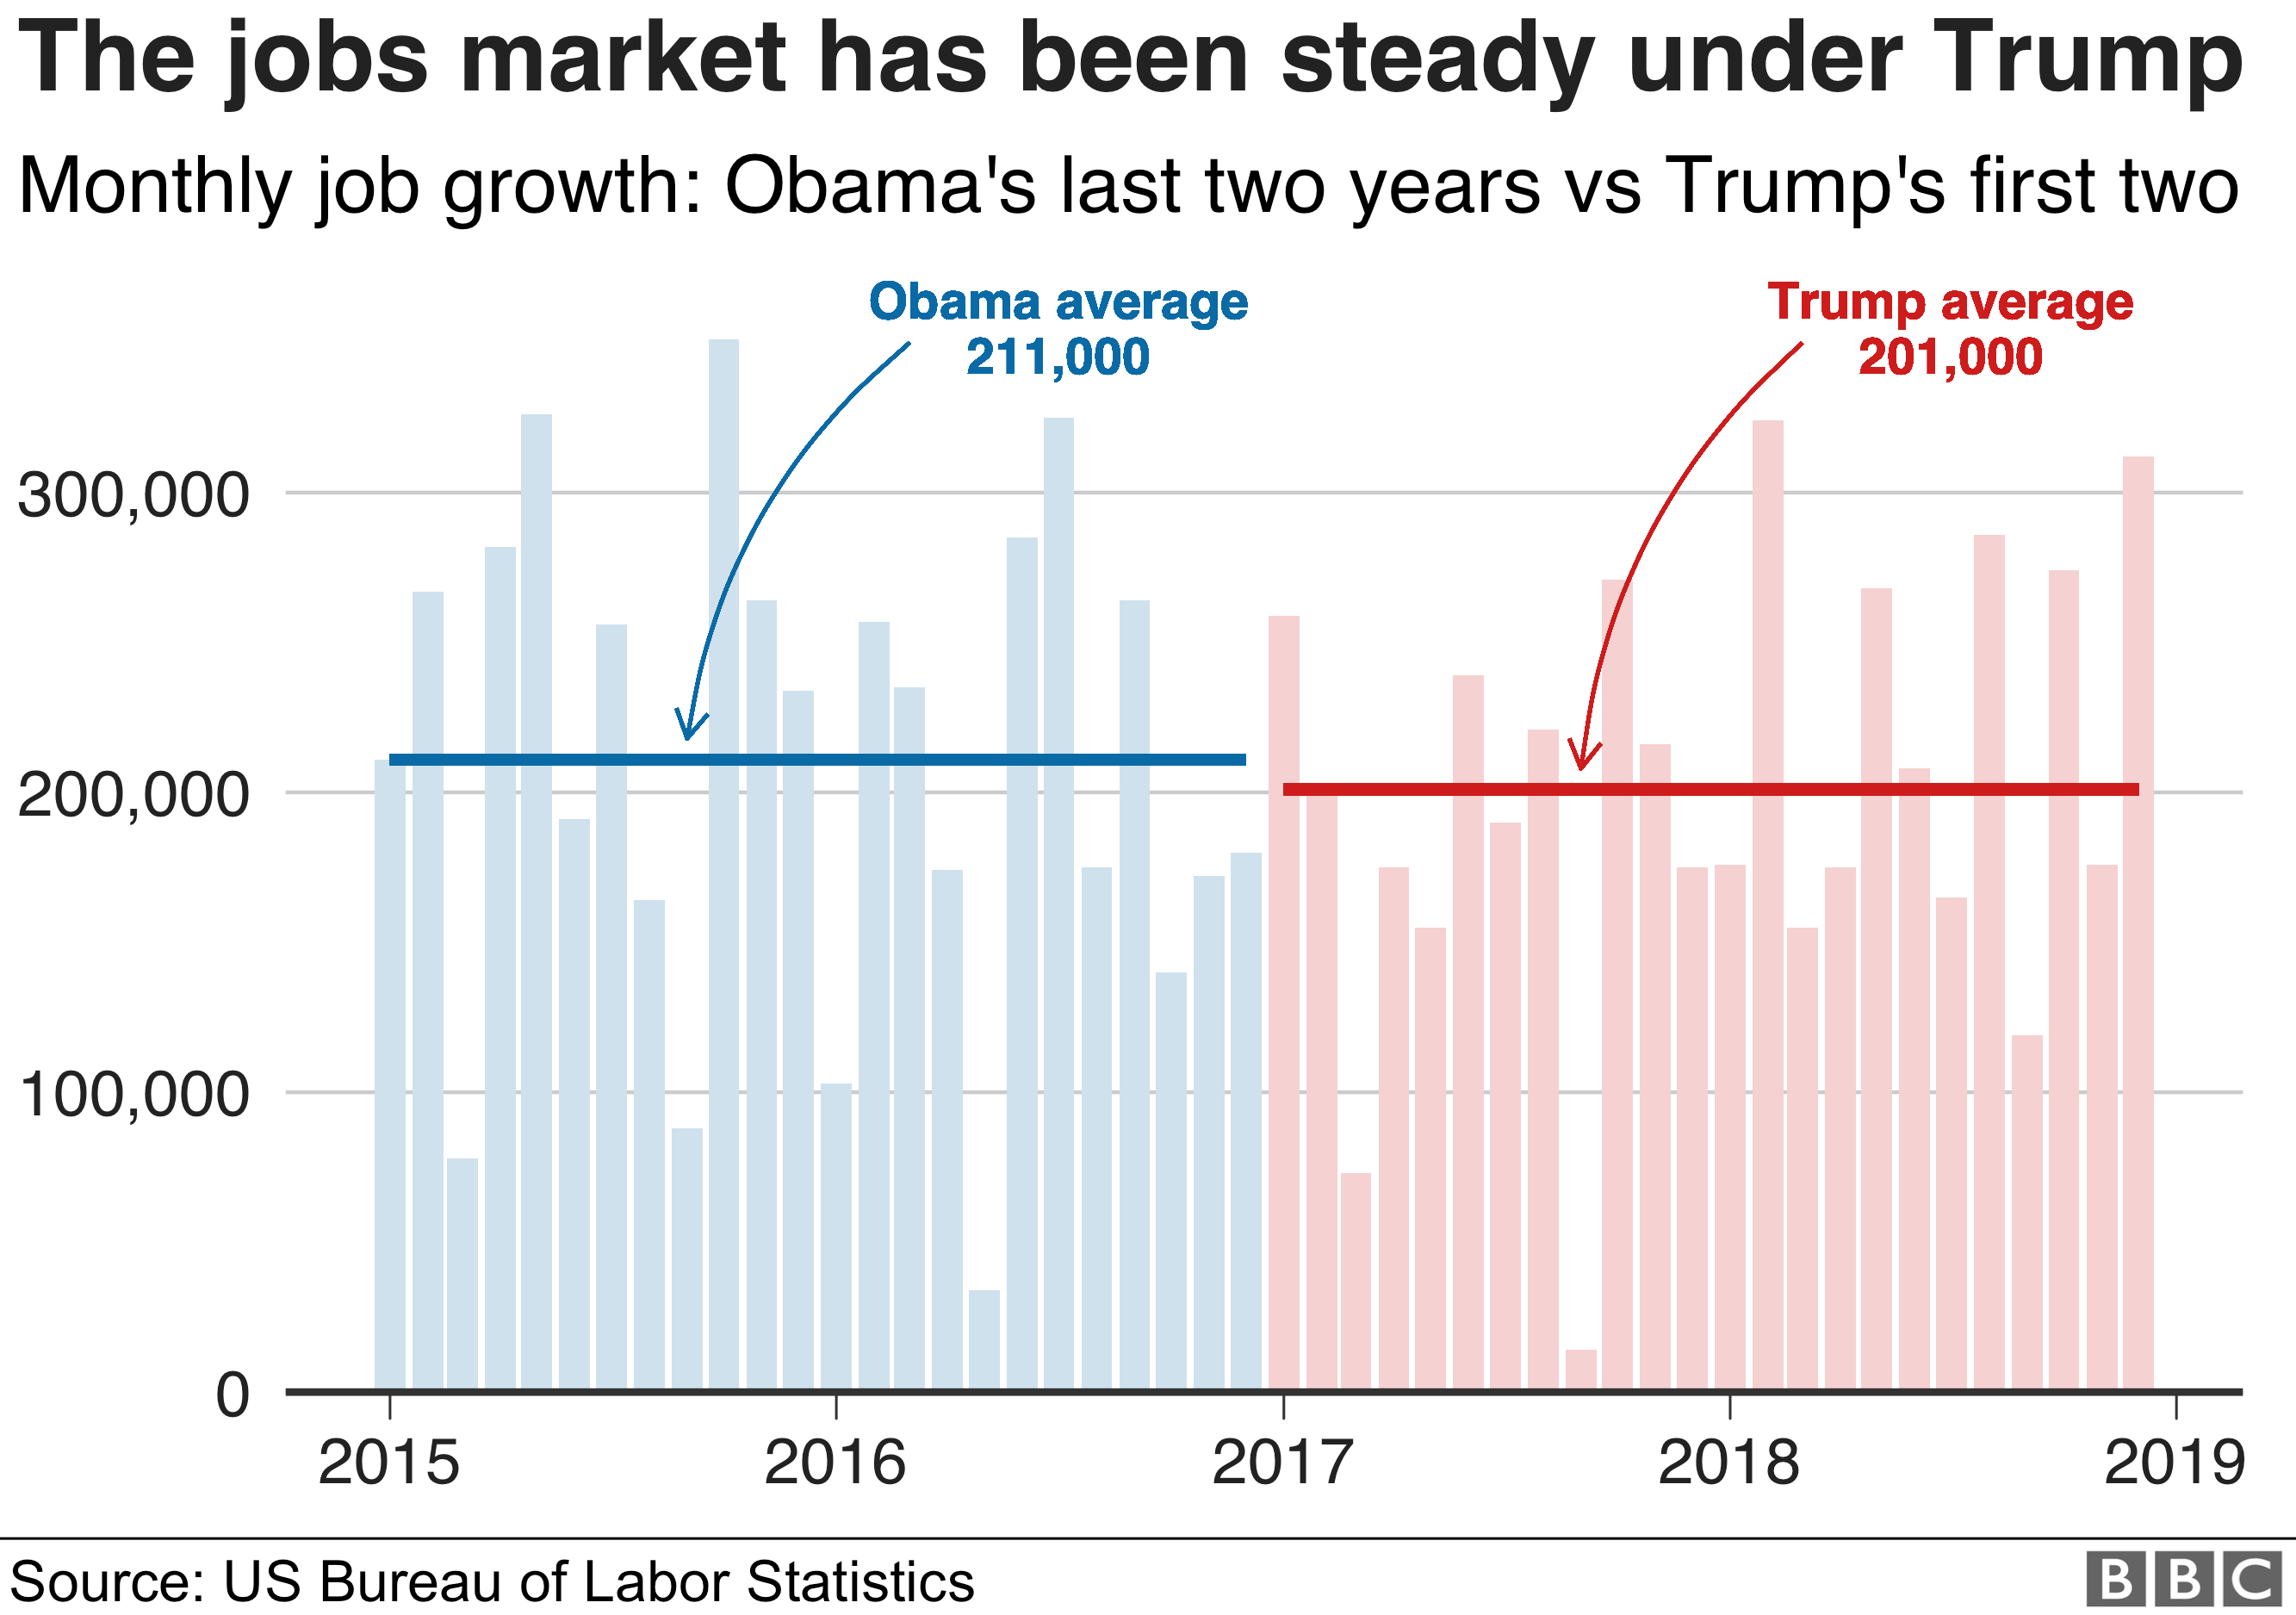 Chart showing how the US jobs market has continued to grow steadily under President Trump